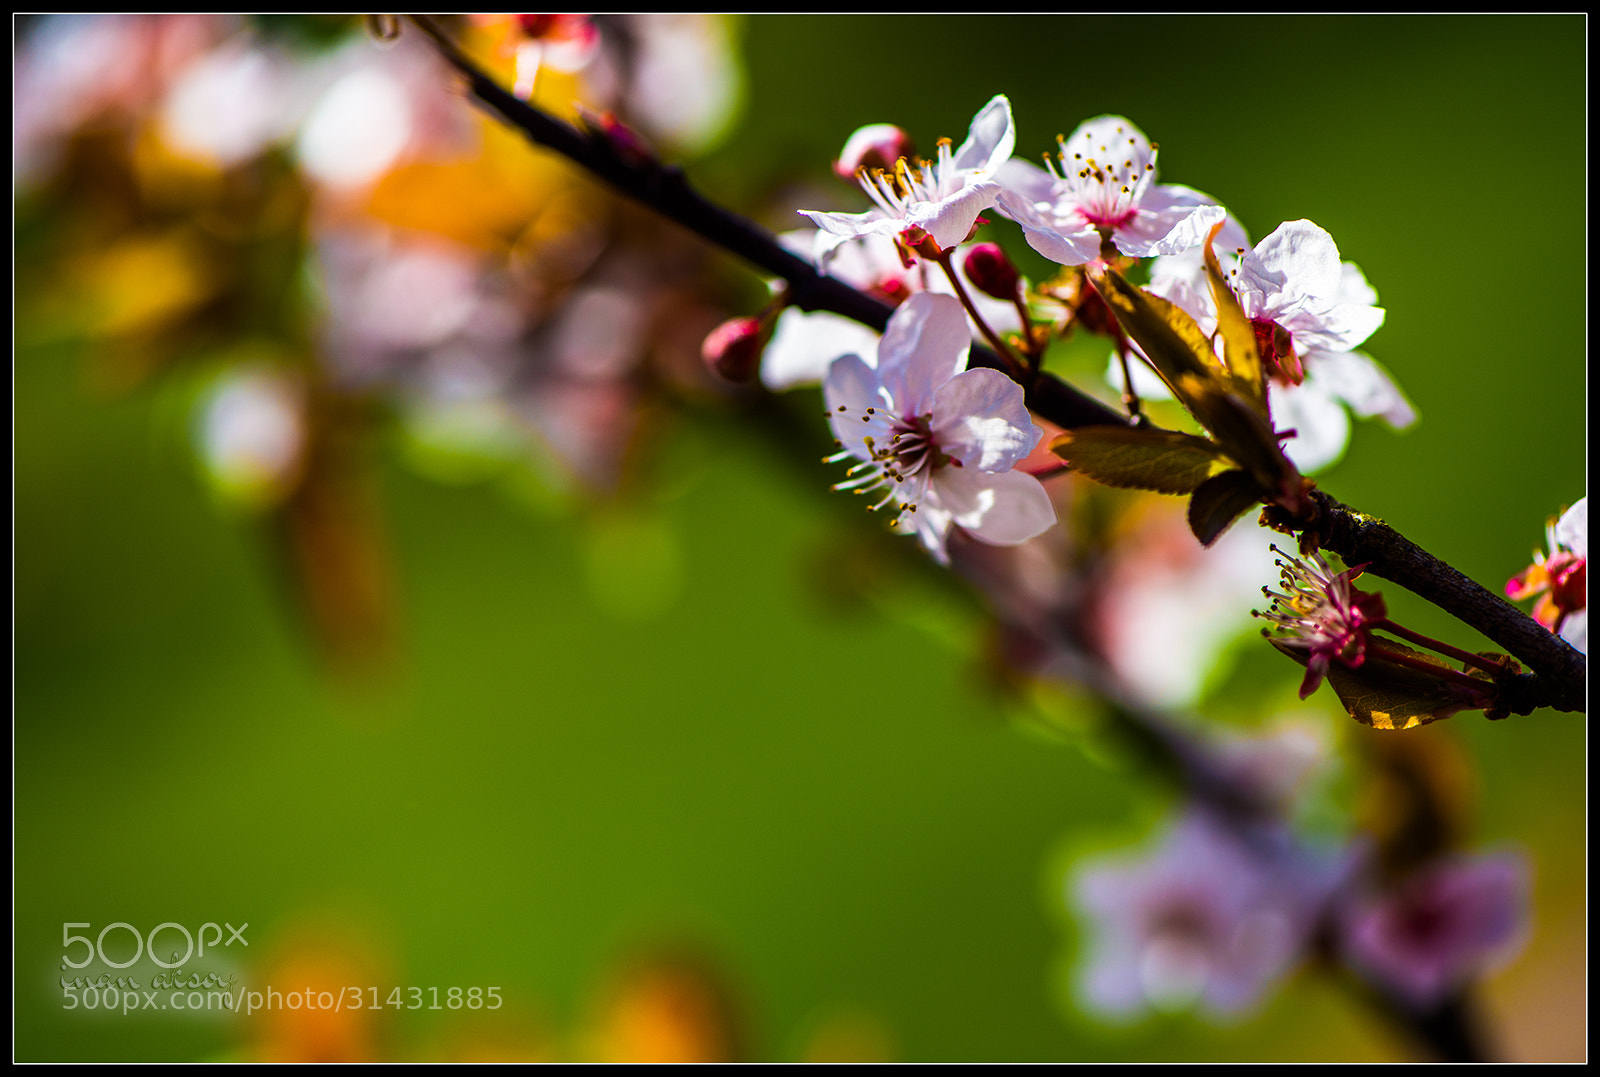 Photograph Spring by Inan Aksoy on 500px